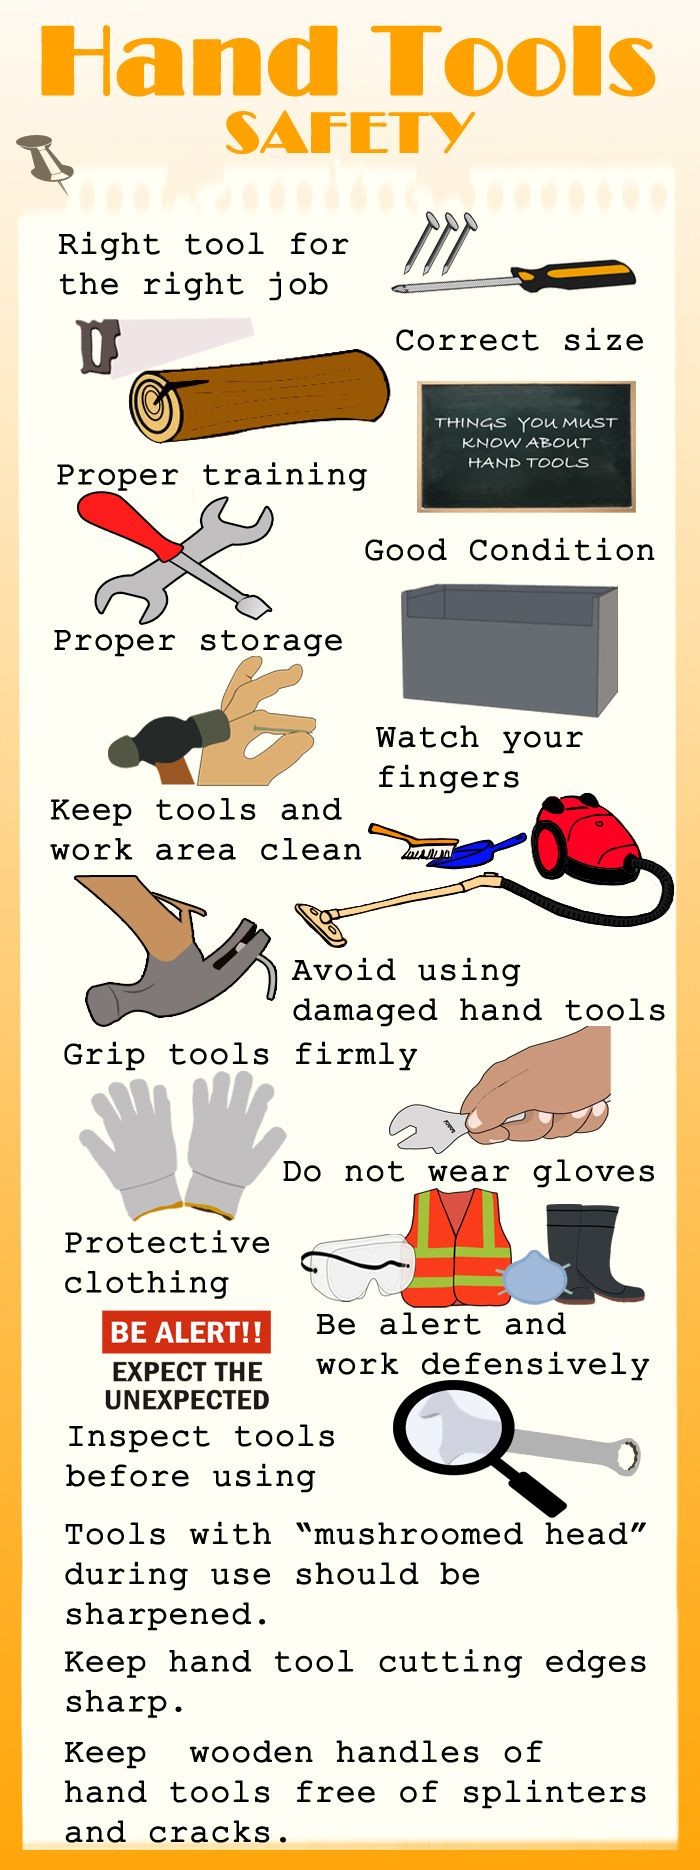 Amerisure Insights Blog | Brought to you by Amerisure ... |Hand Safety Tips